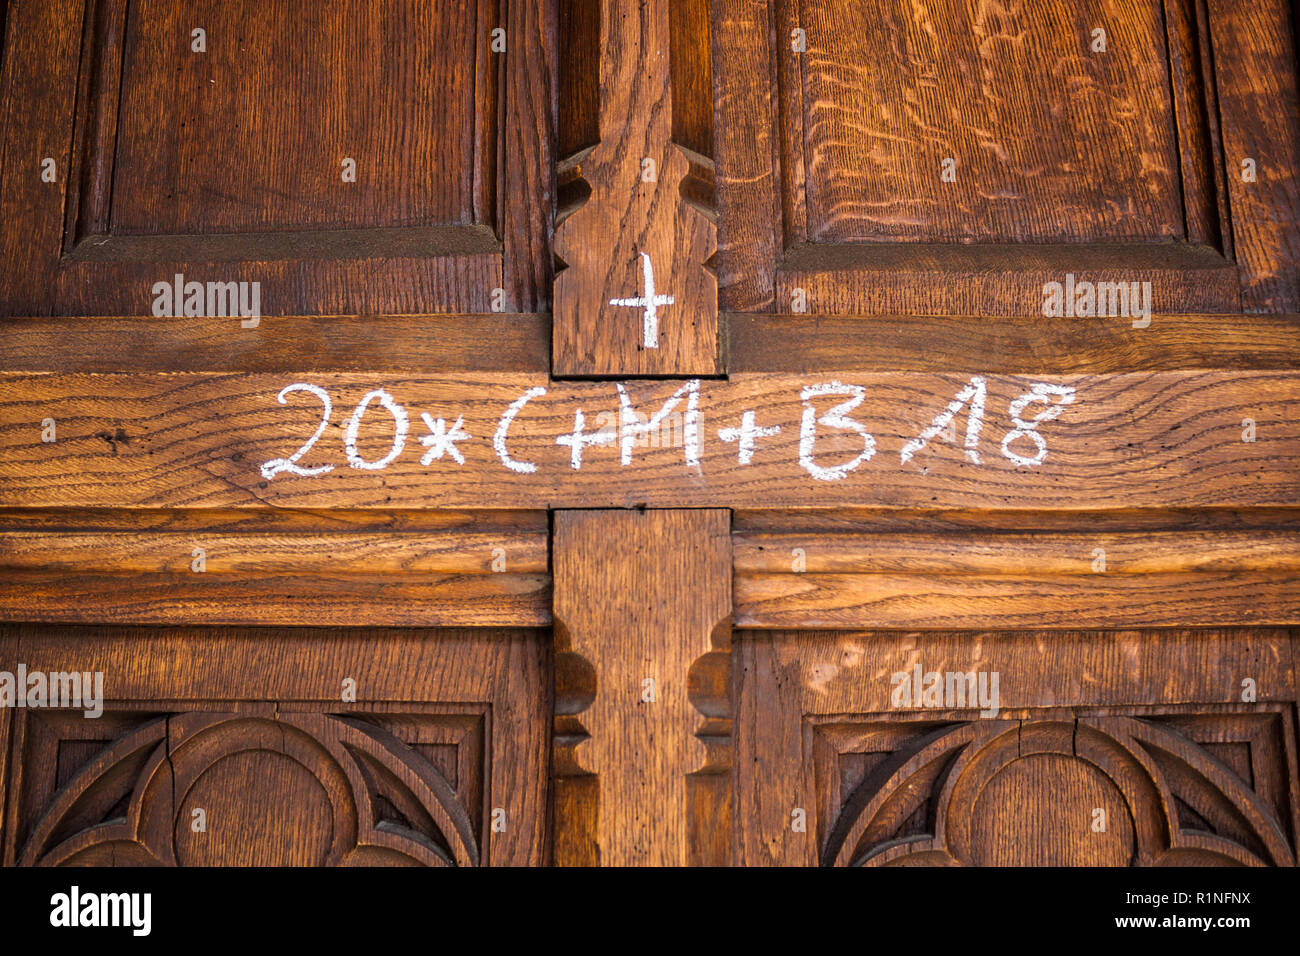 Epiphany day home blessing (Chalking the door) tradition. C, M, and B are the initials for the names of three kings (Caspar, Melchior, Balthasar) and  - Stock Image